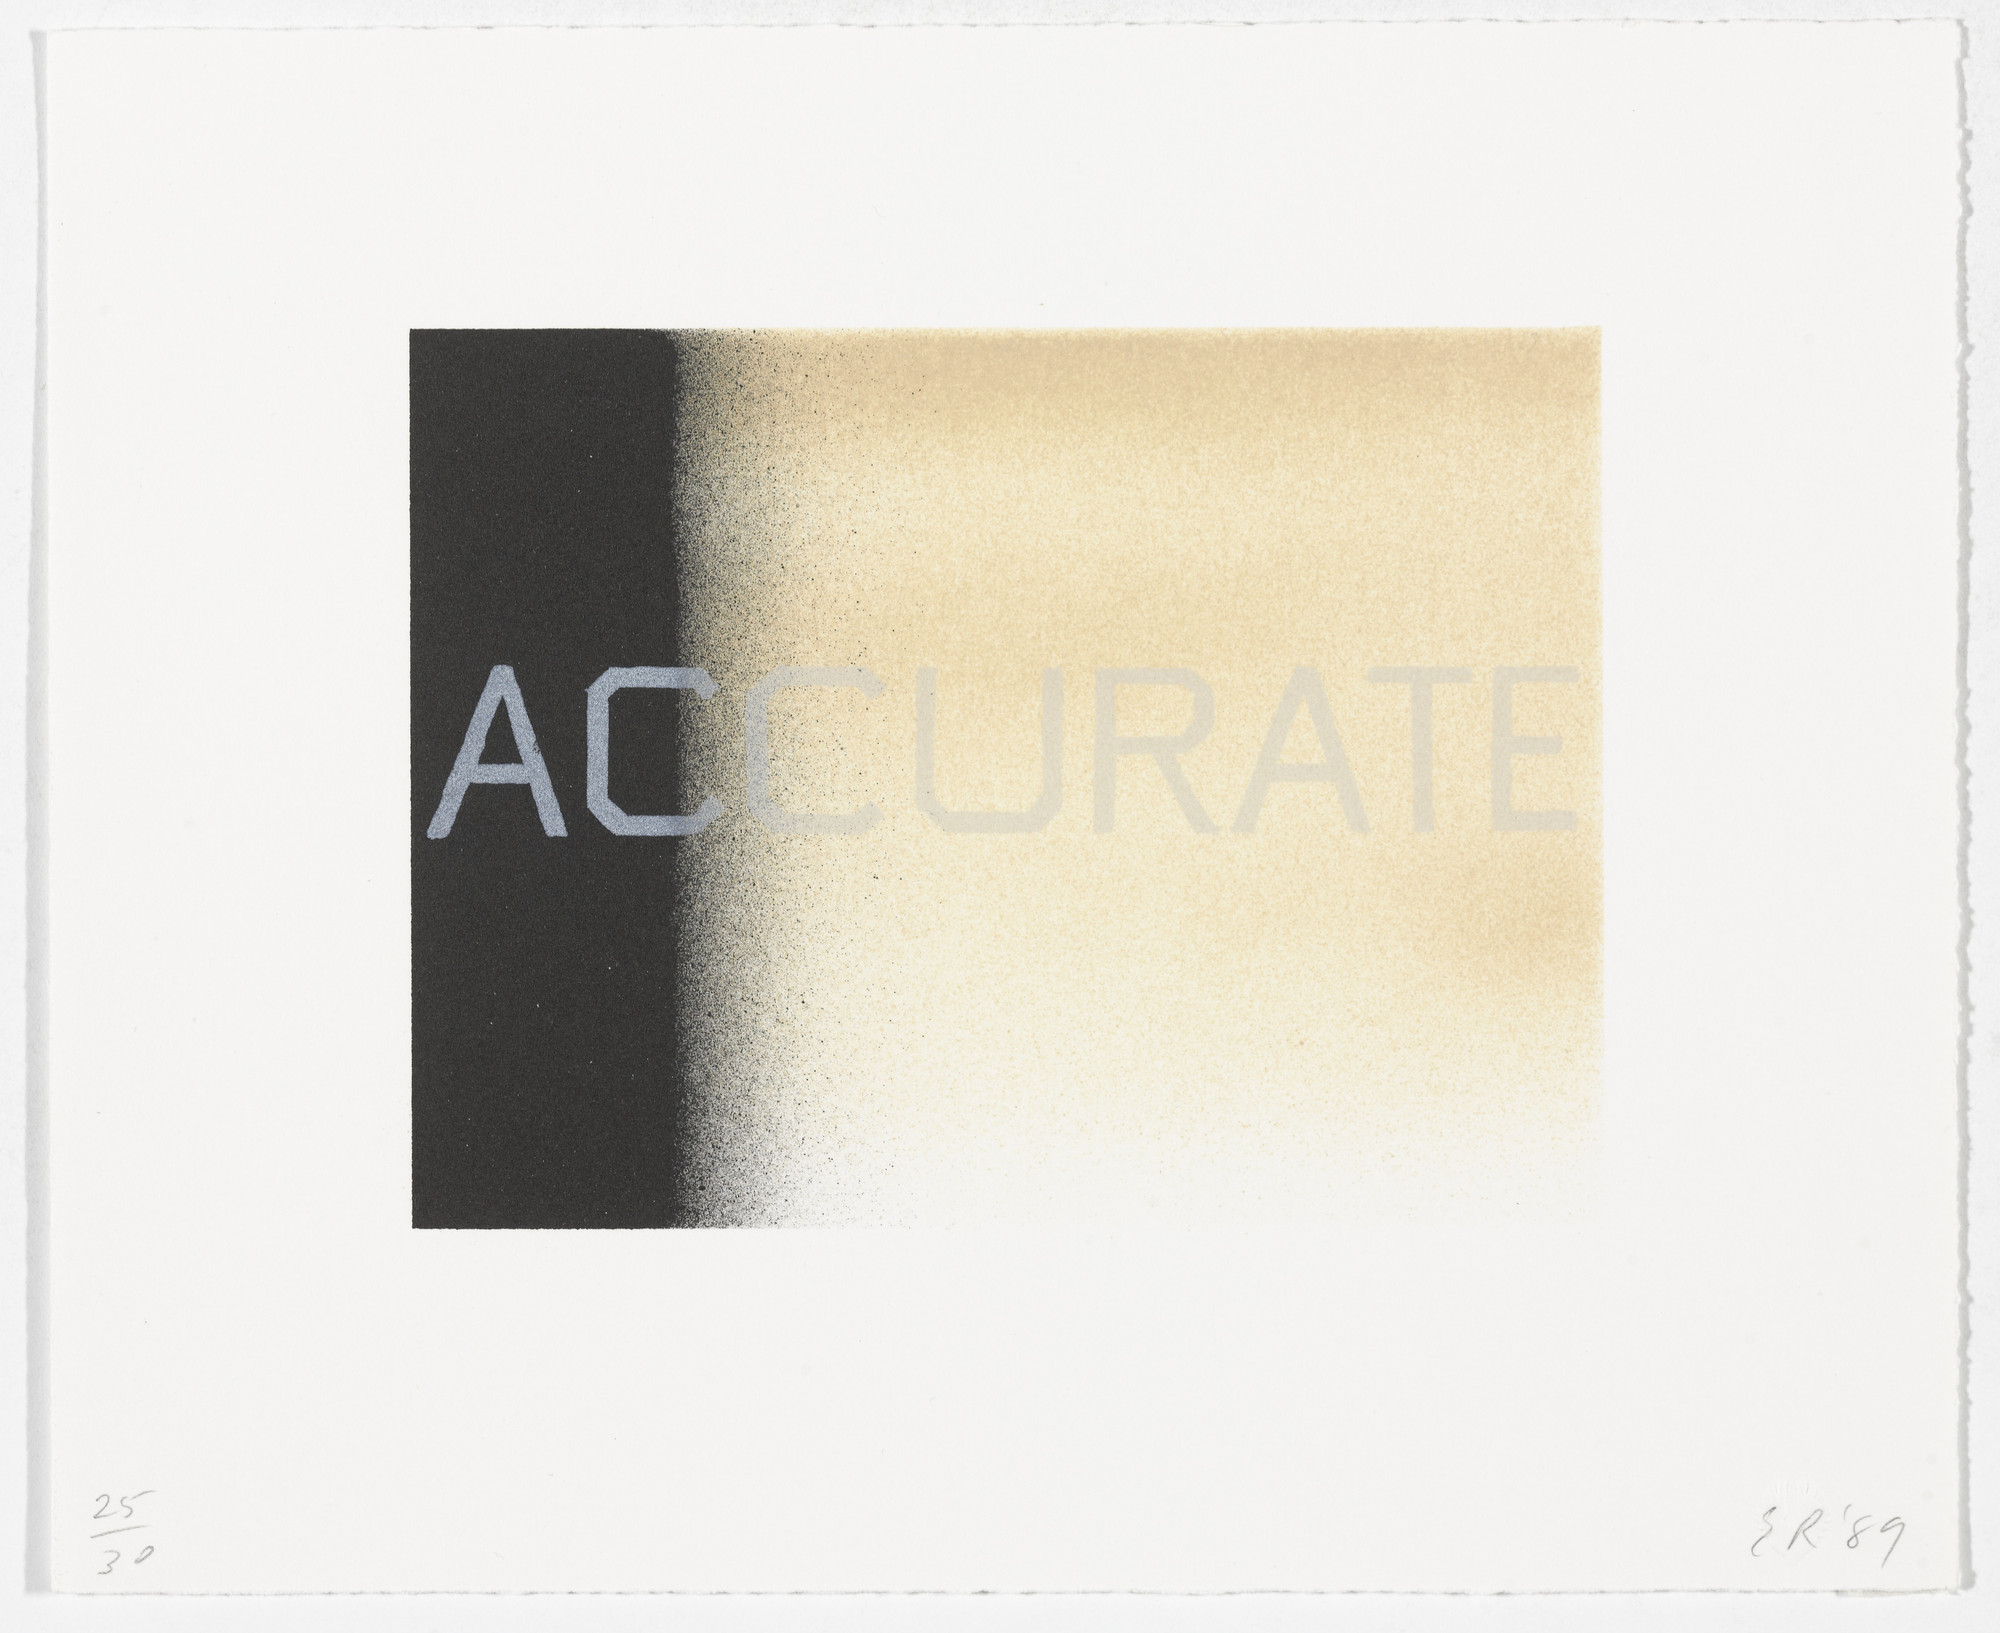 Edward Ruscha. Accurate from That Is Right And Other Similarities. 1989